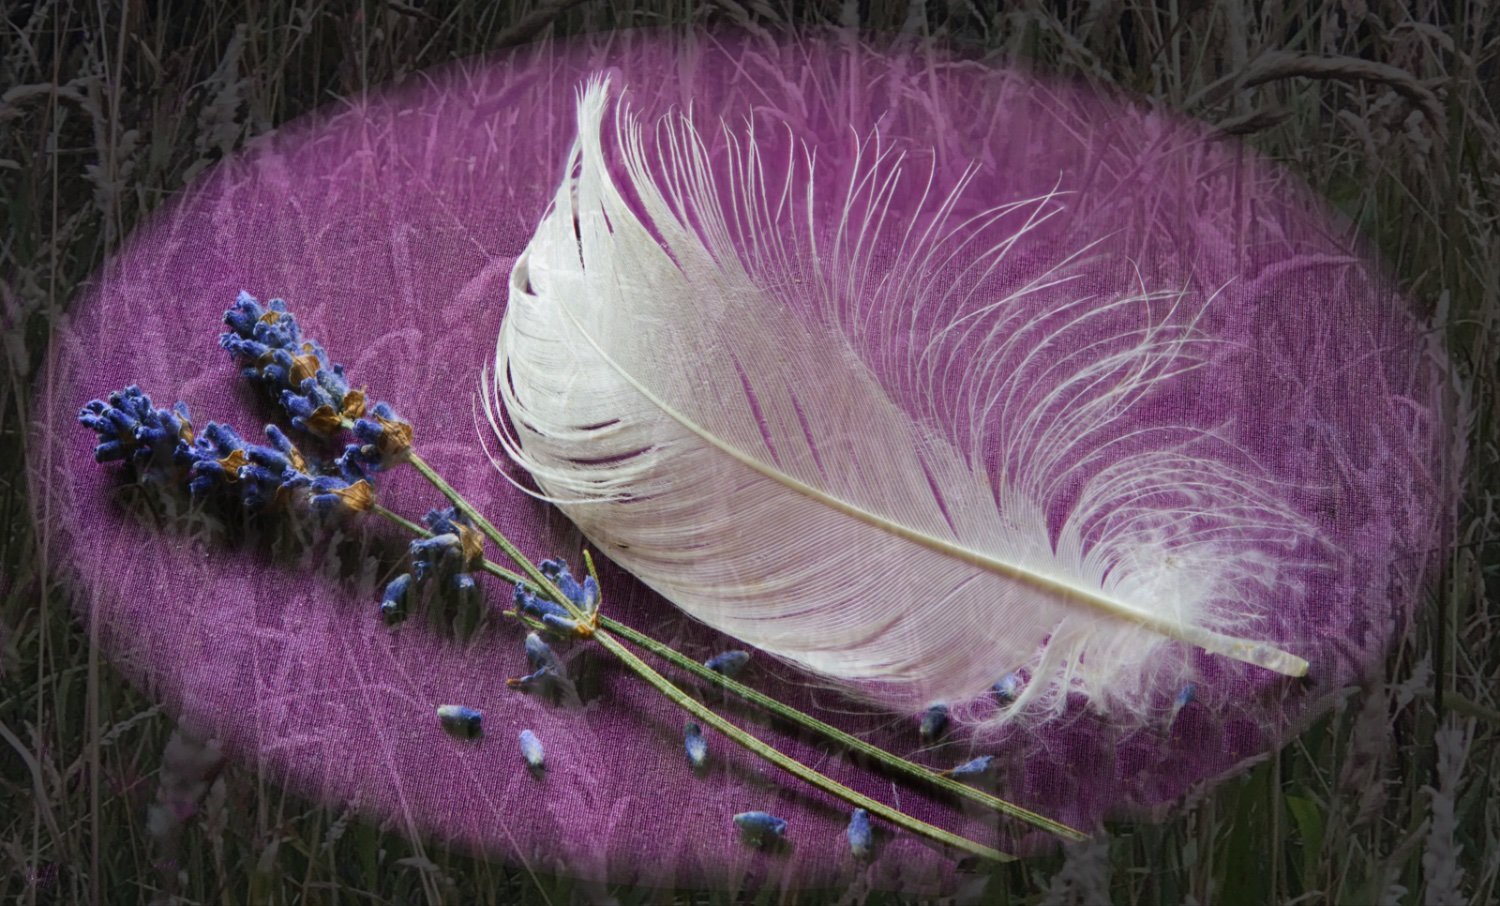 Feather & Lavender & Grass blurred 3-Edit.tif-2.jpg